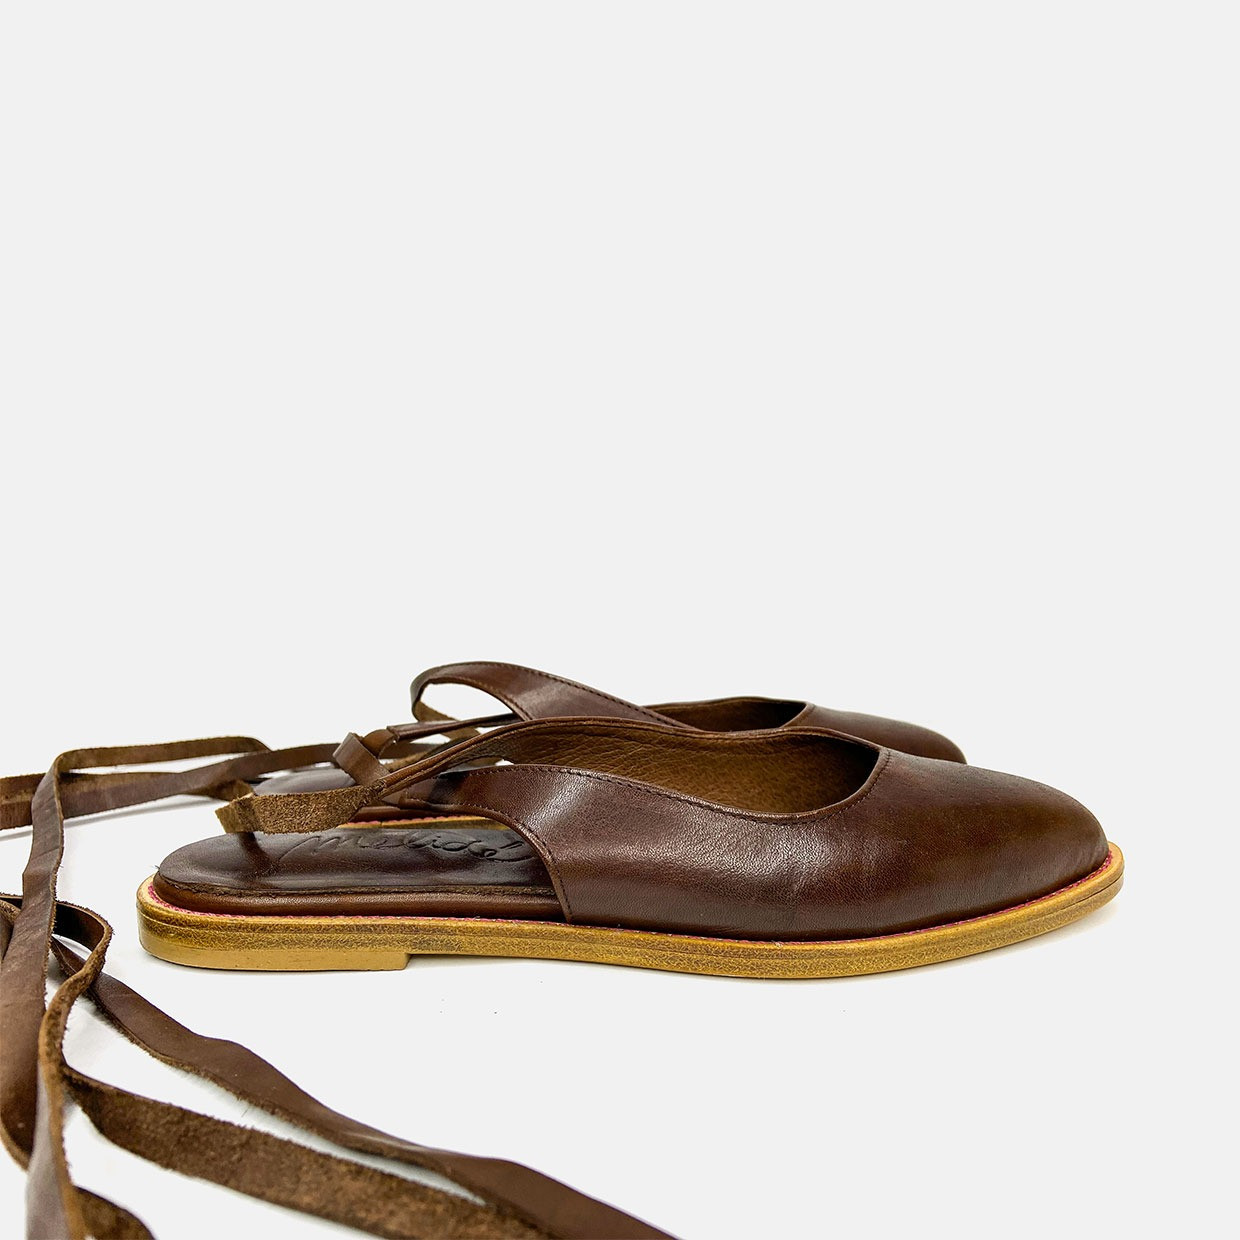 The LACE-UP flats - volpe